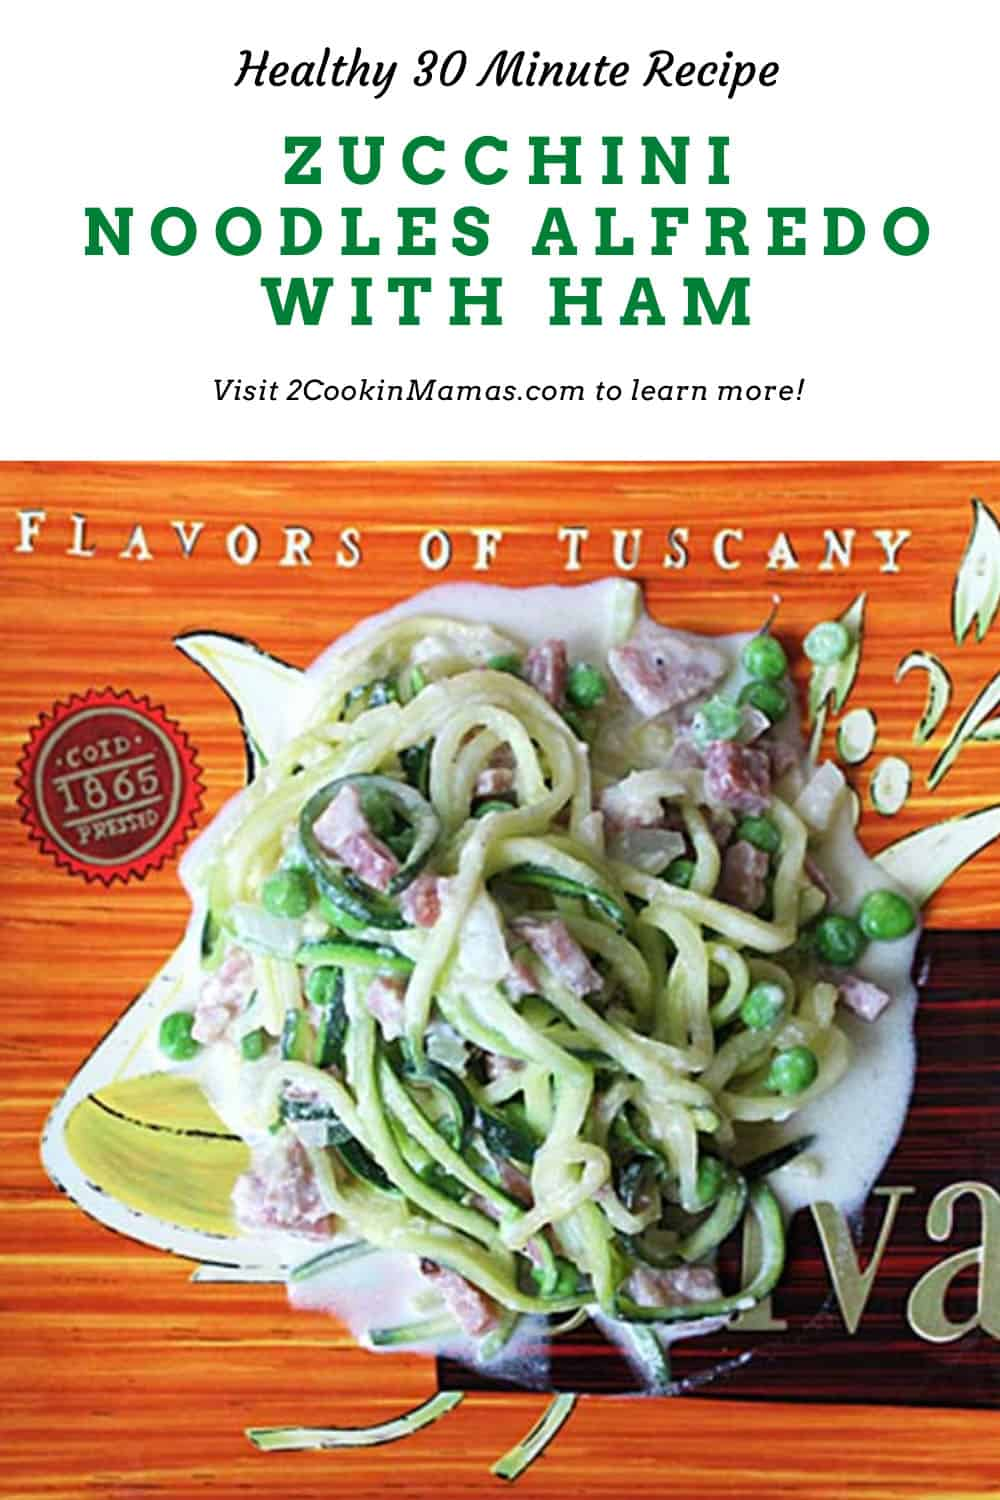 Skillet Zucchini Noodles in Cream Sauce with Ham